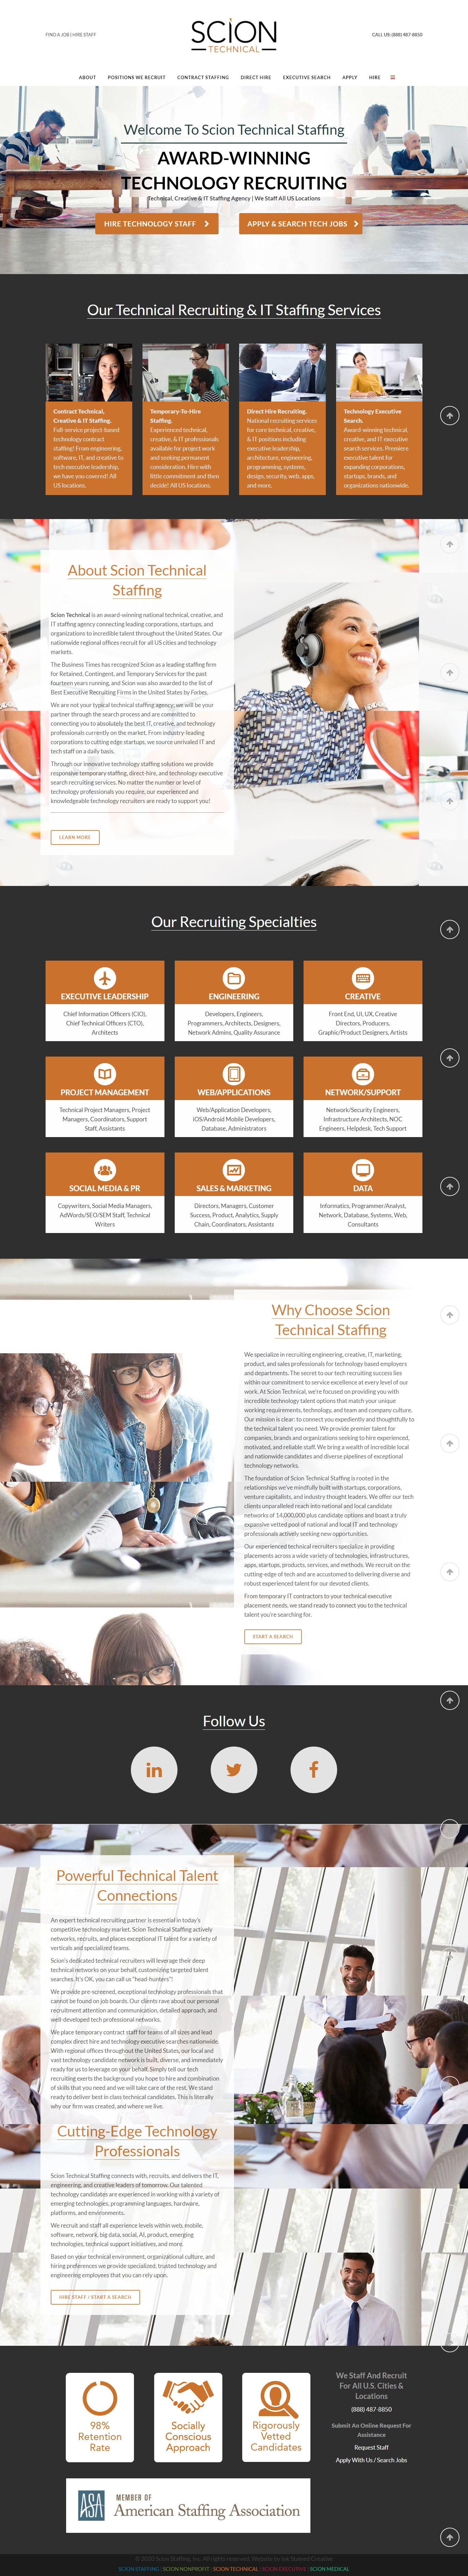 Sciontechnical In 2020 Staffing Agency Talent Network Temporary Staffing